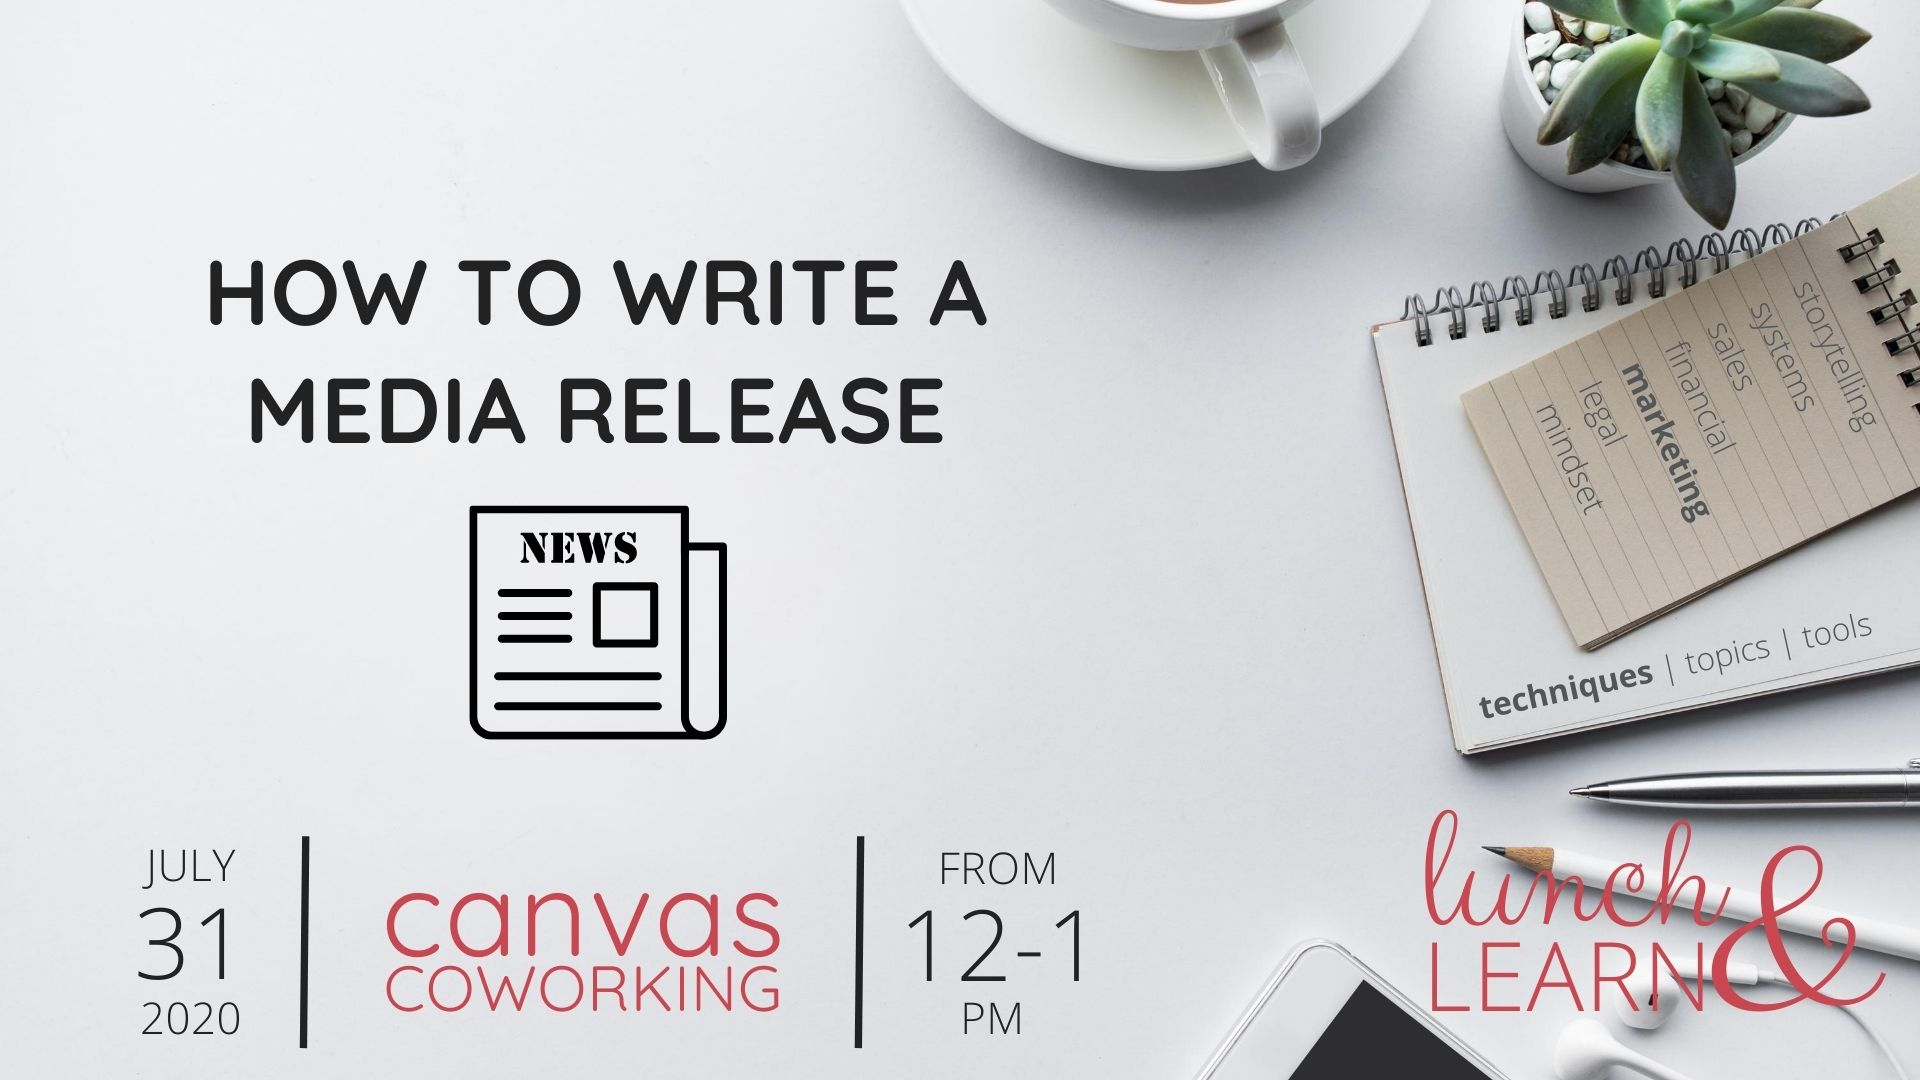 How to write a media release - Canvas Coworking - Lunch & Learn - 31 July 2020